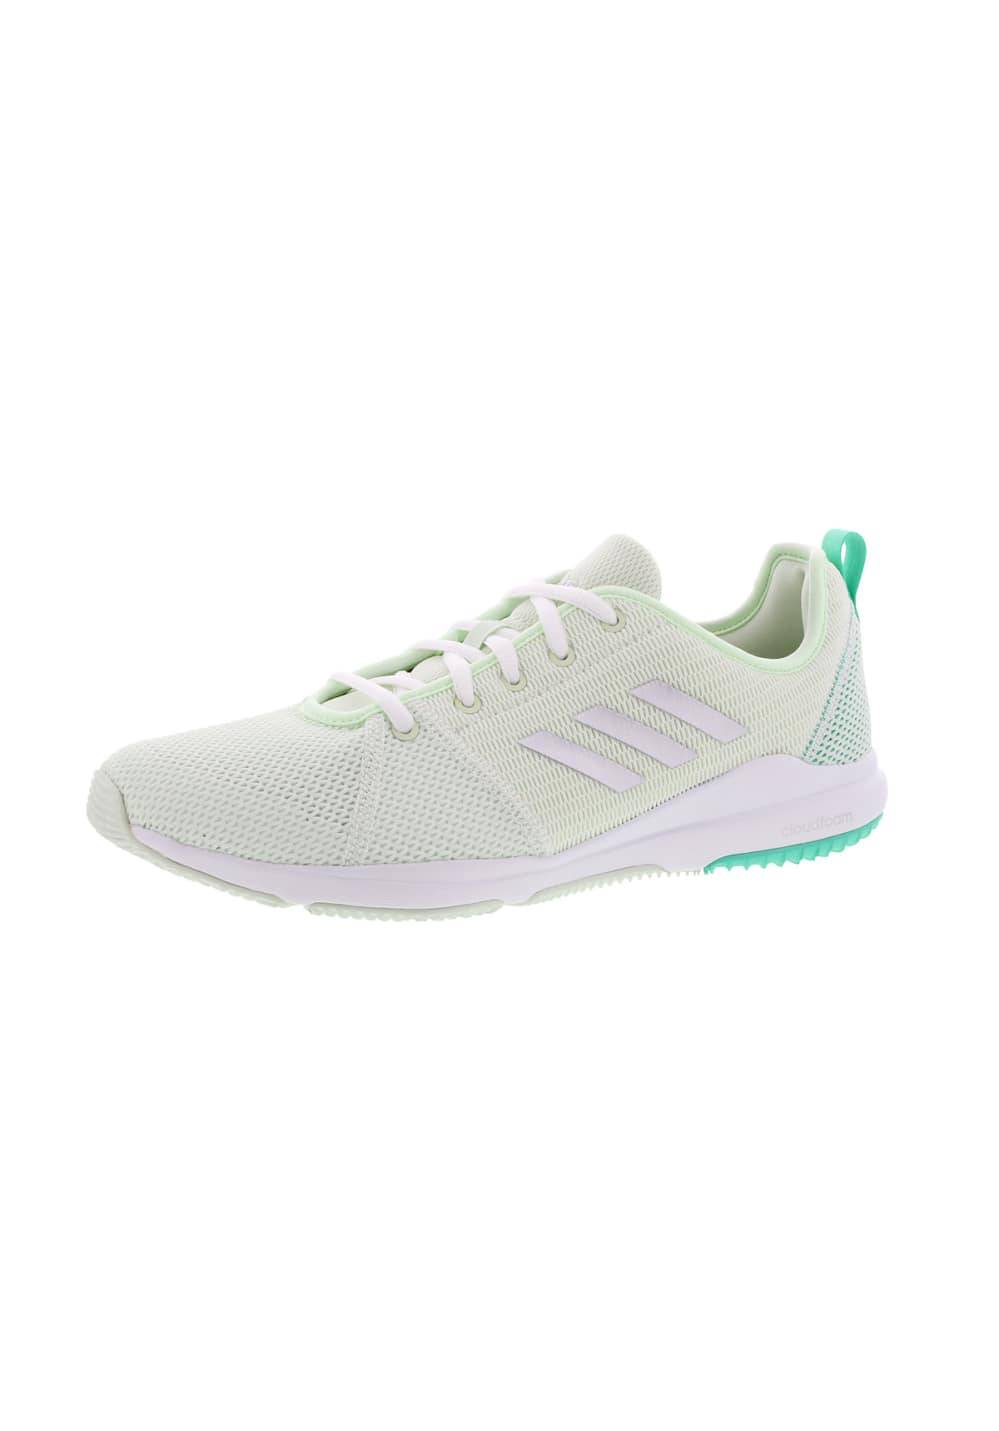 the best attitude fc1c6 ca78a Next. -60%. adidas. Arianna Cloudfoam - Fitness shoes ...